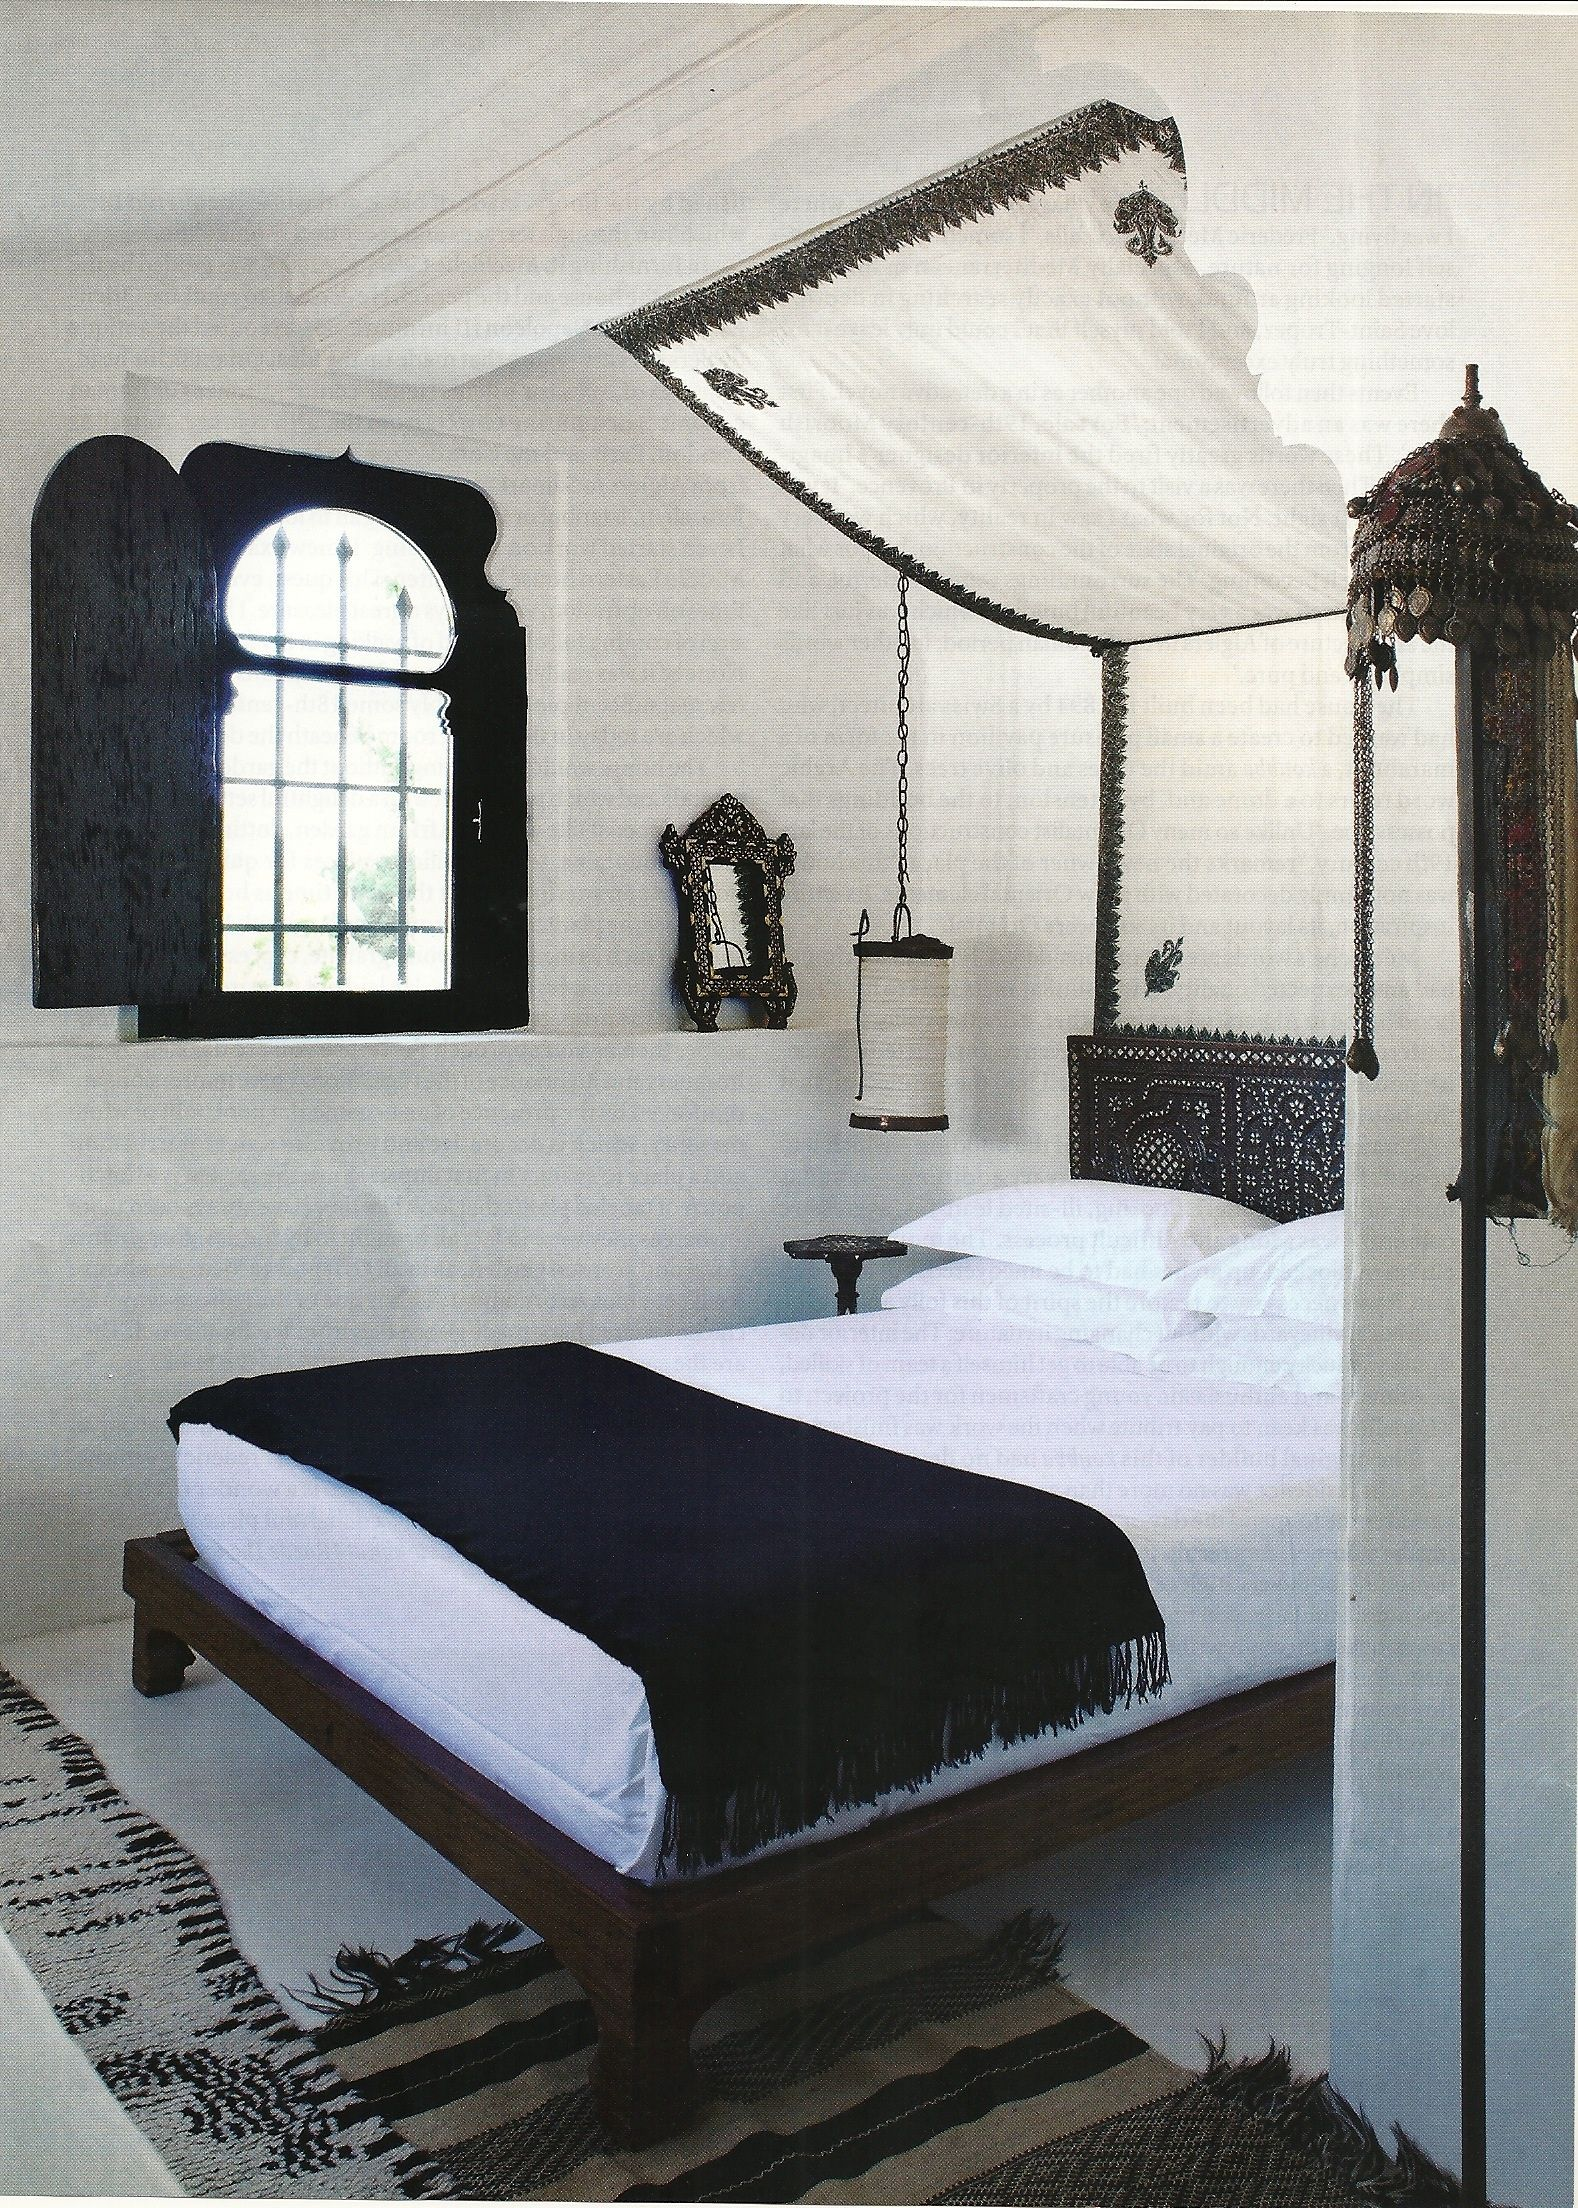 Moroccan Bed Canopy small black and white moroccan bedroom. i'm thinking it would be a